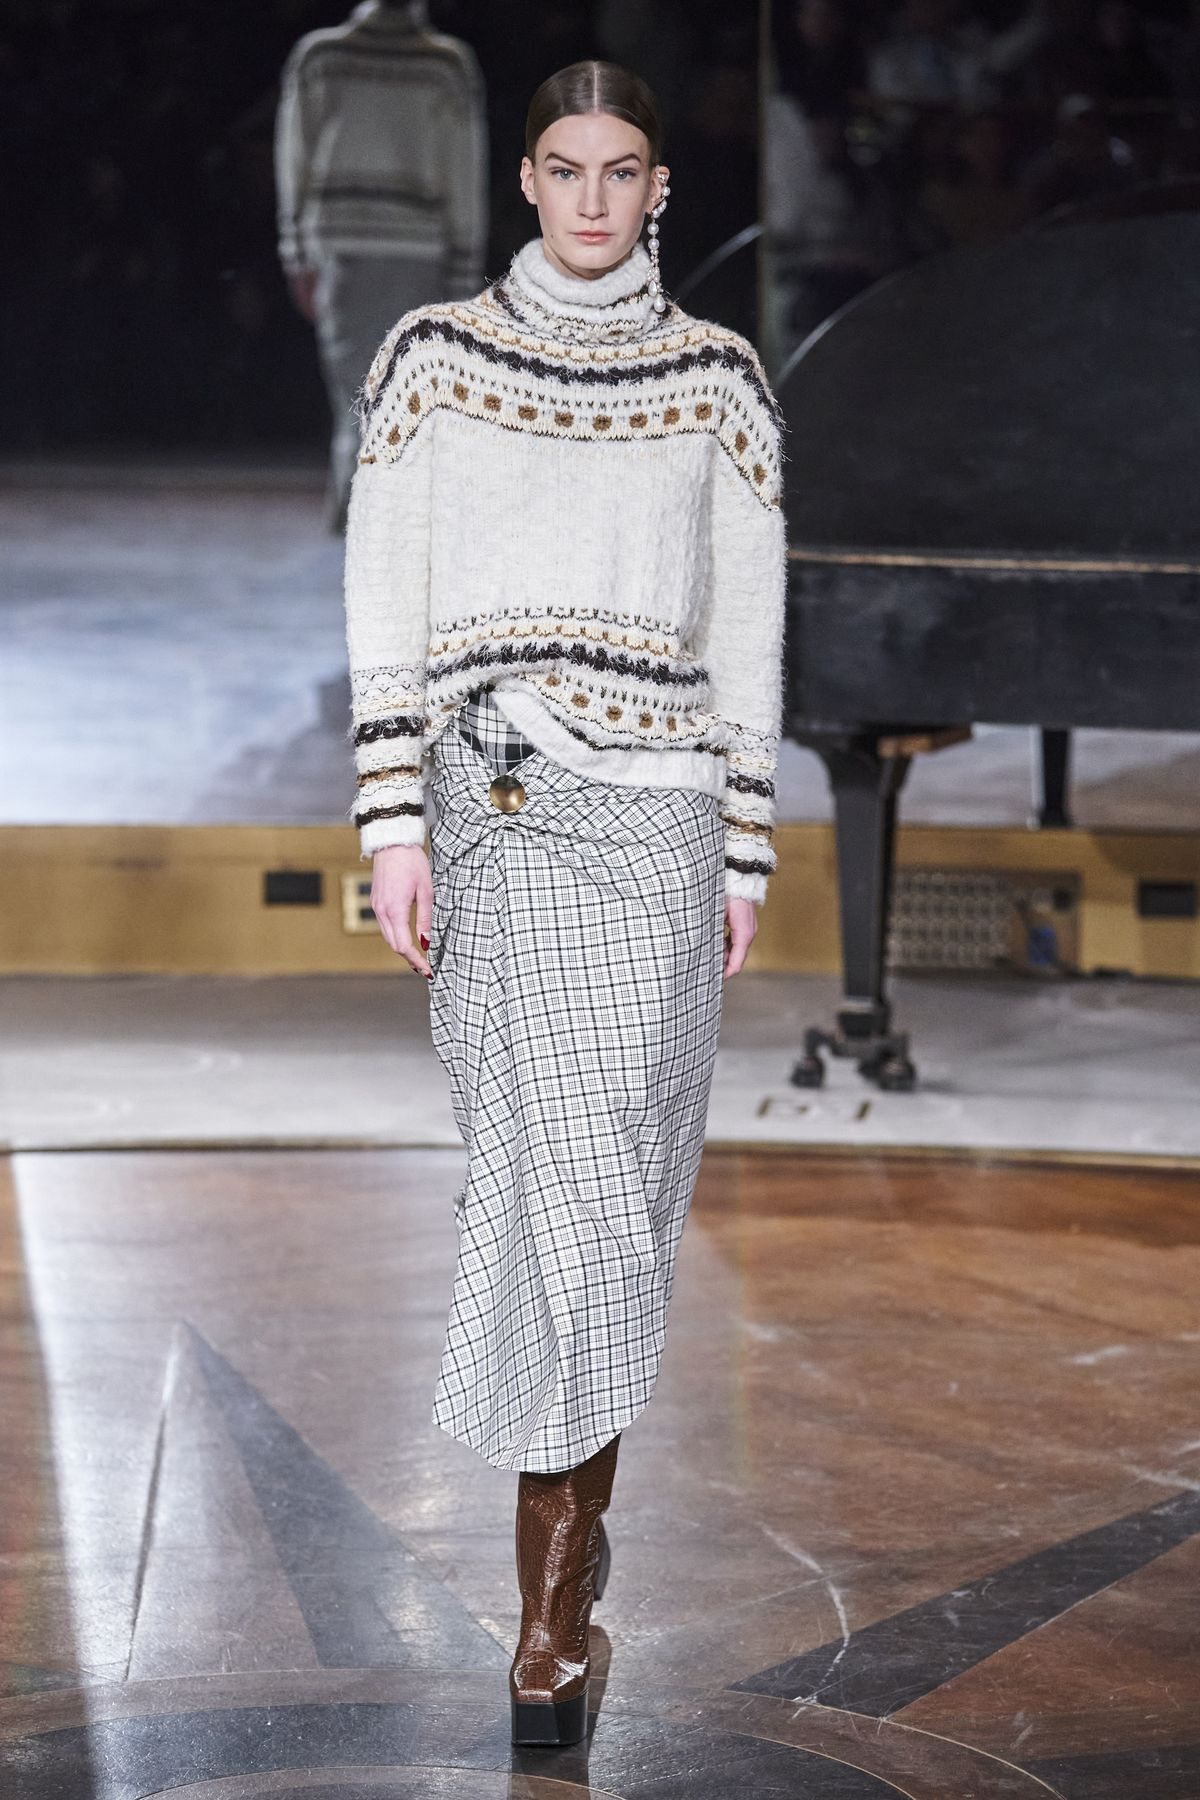 New York, Ready-to-Wear, Herbst/Winter 2020/21 (ddp images)